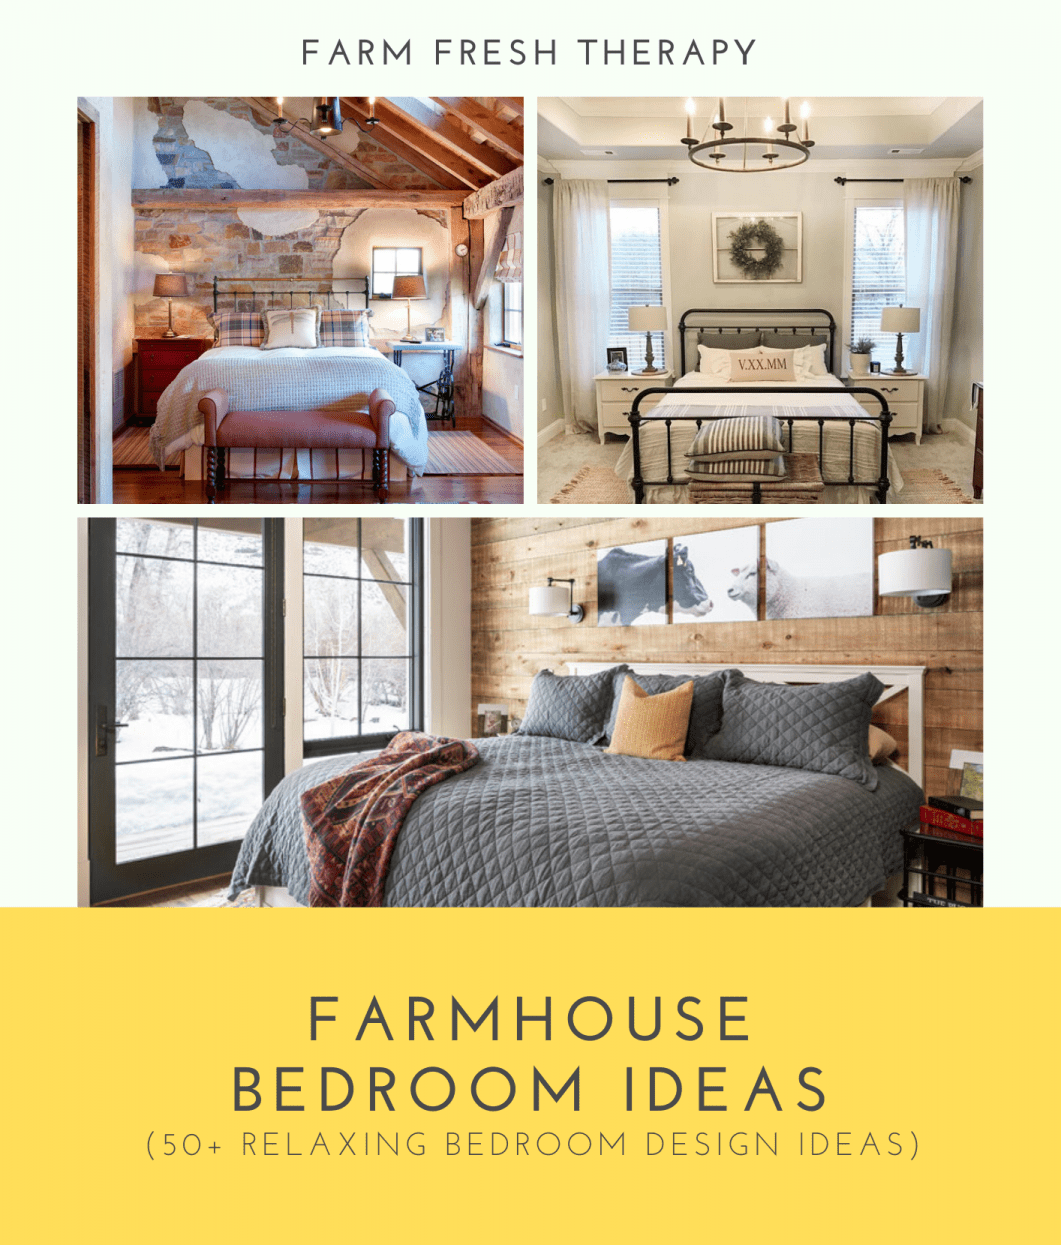 Farmhouse Bedroom Ideas